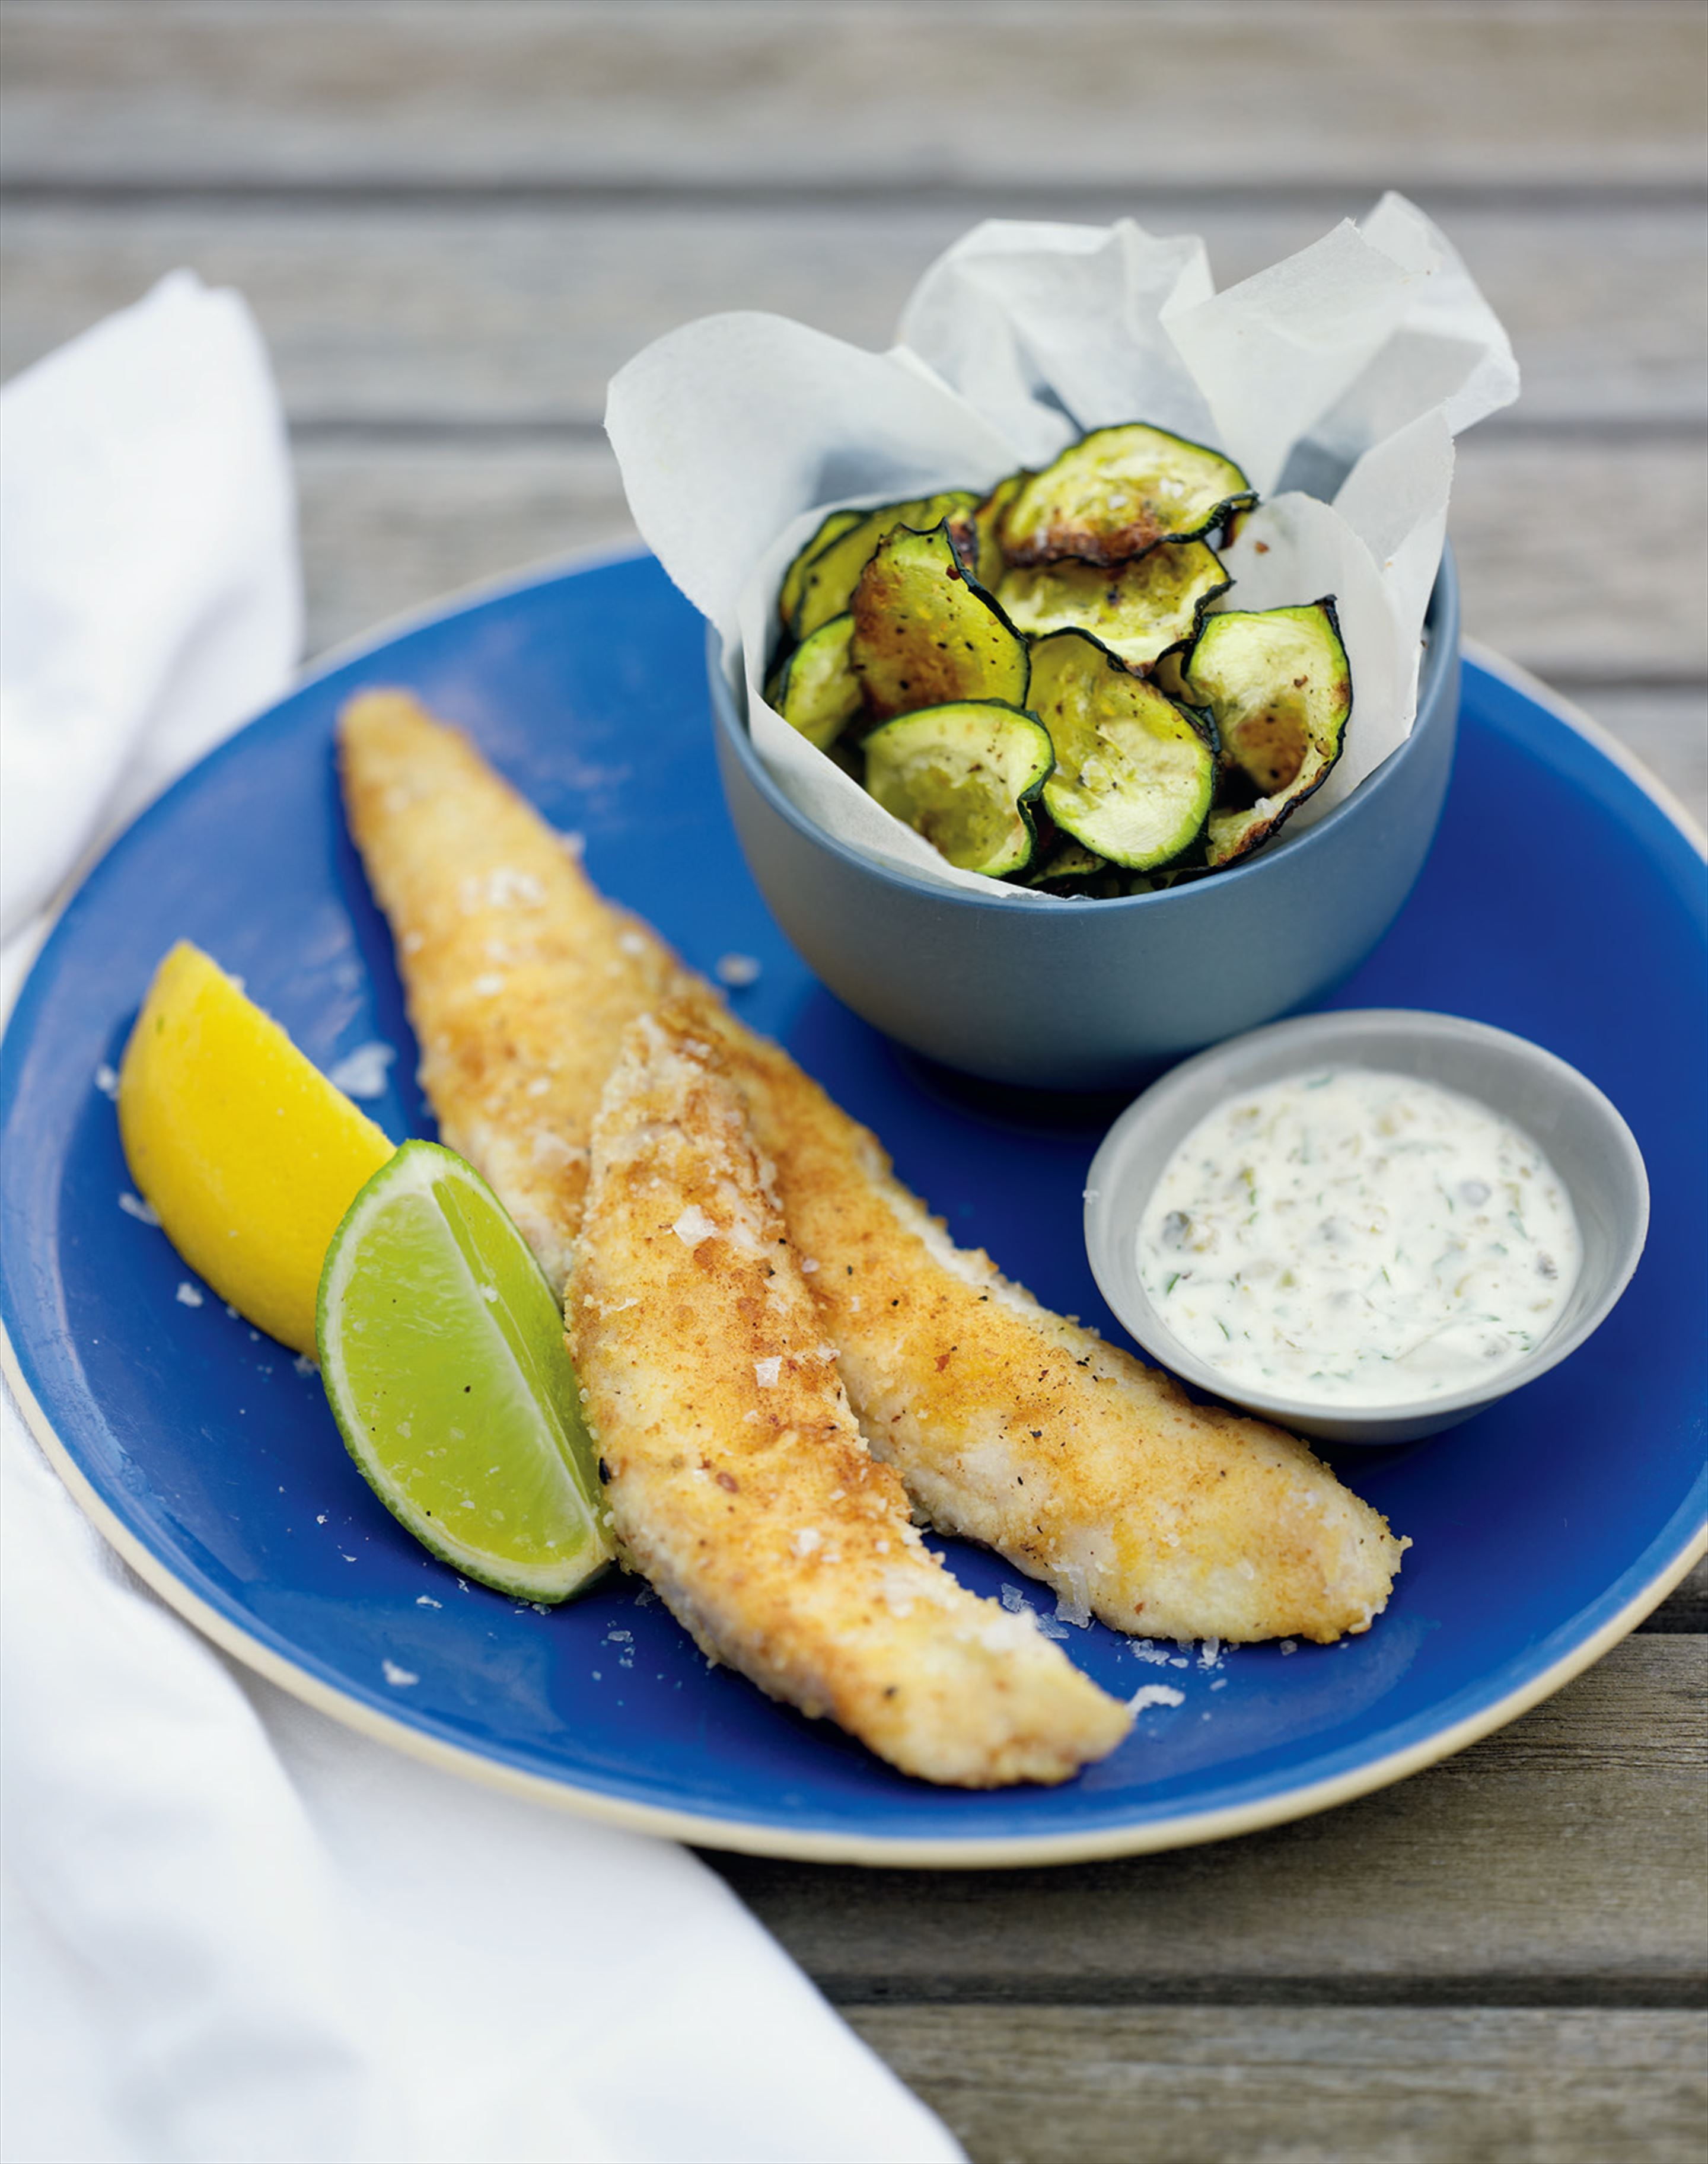 Fish and zucchini chips with tartare sauce